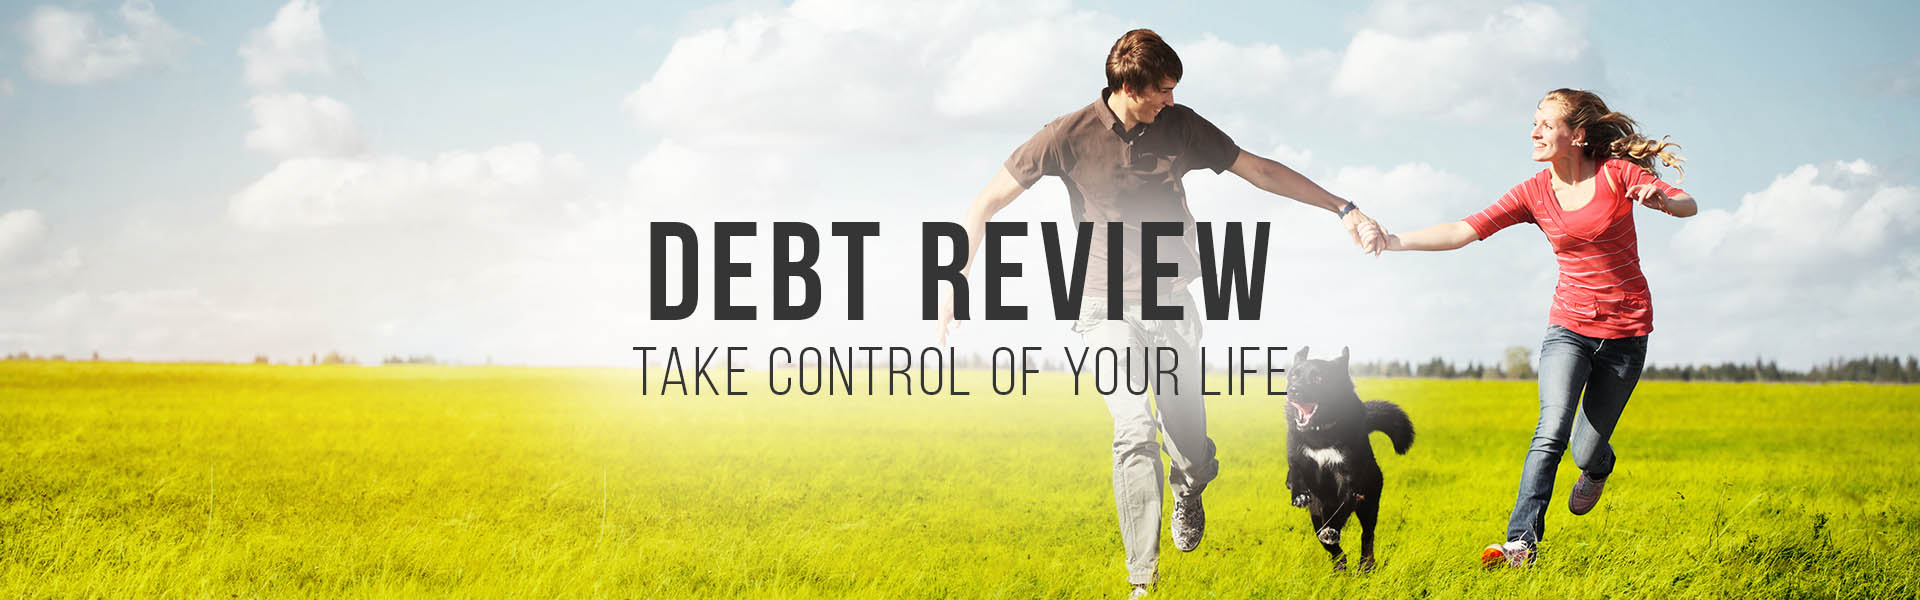 debt-review-banner